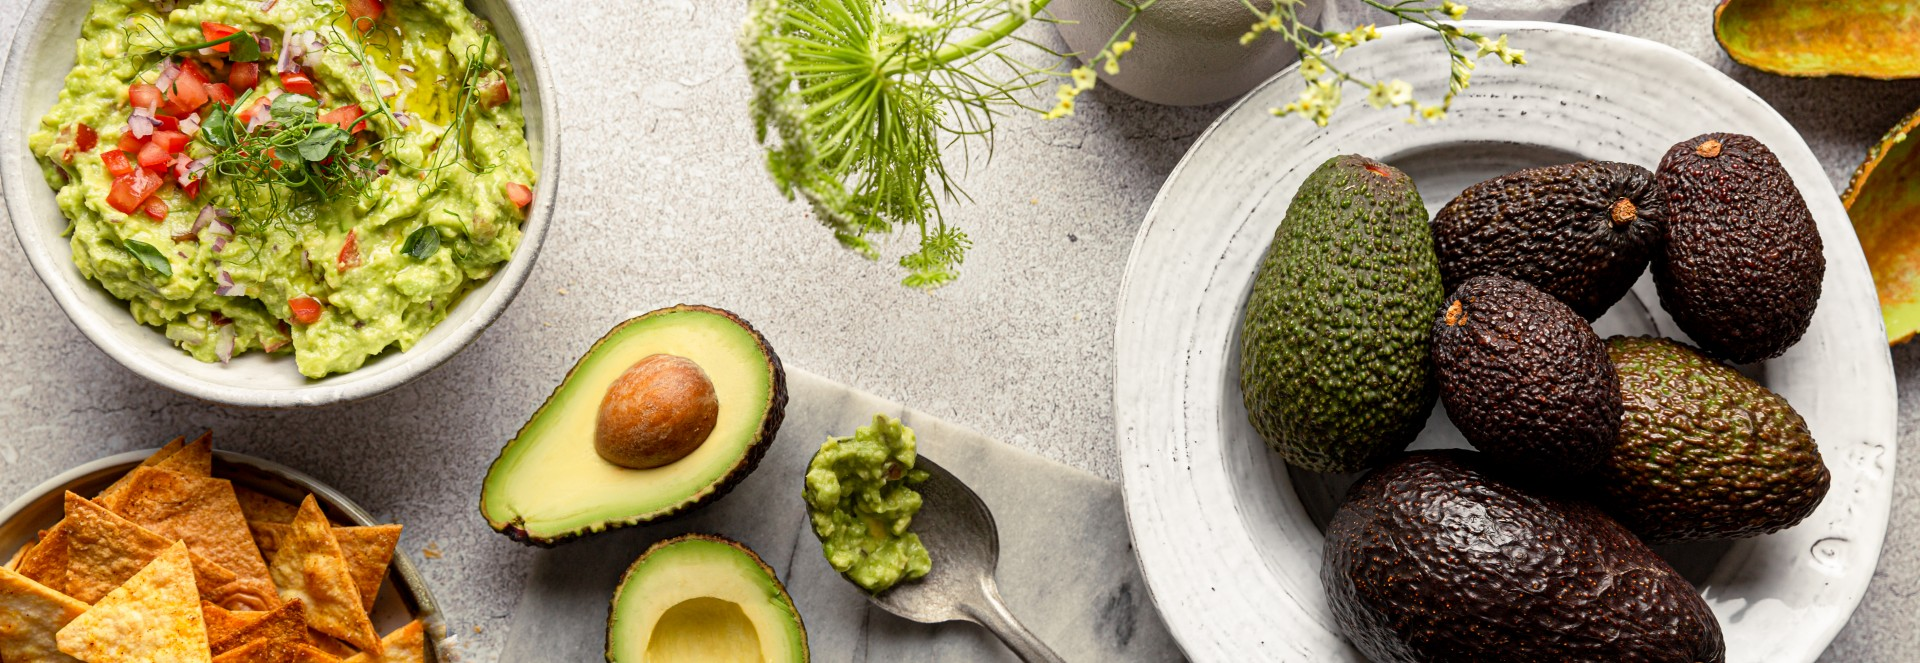 Alles Avocado Inspirationsseite